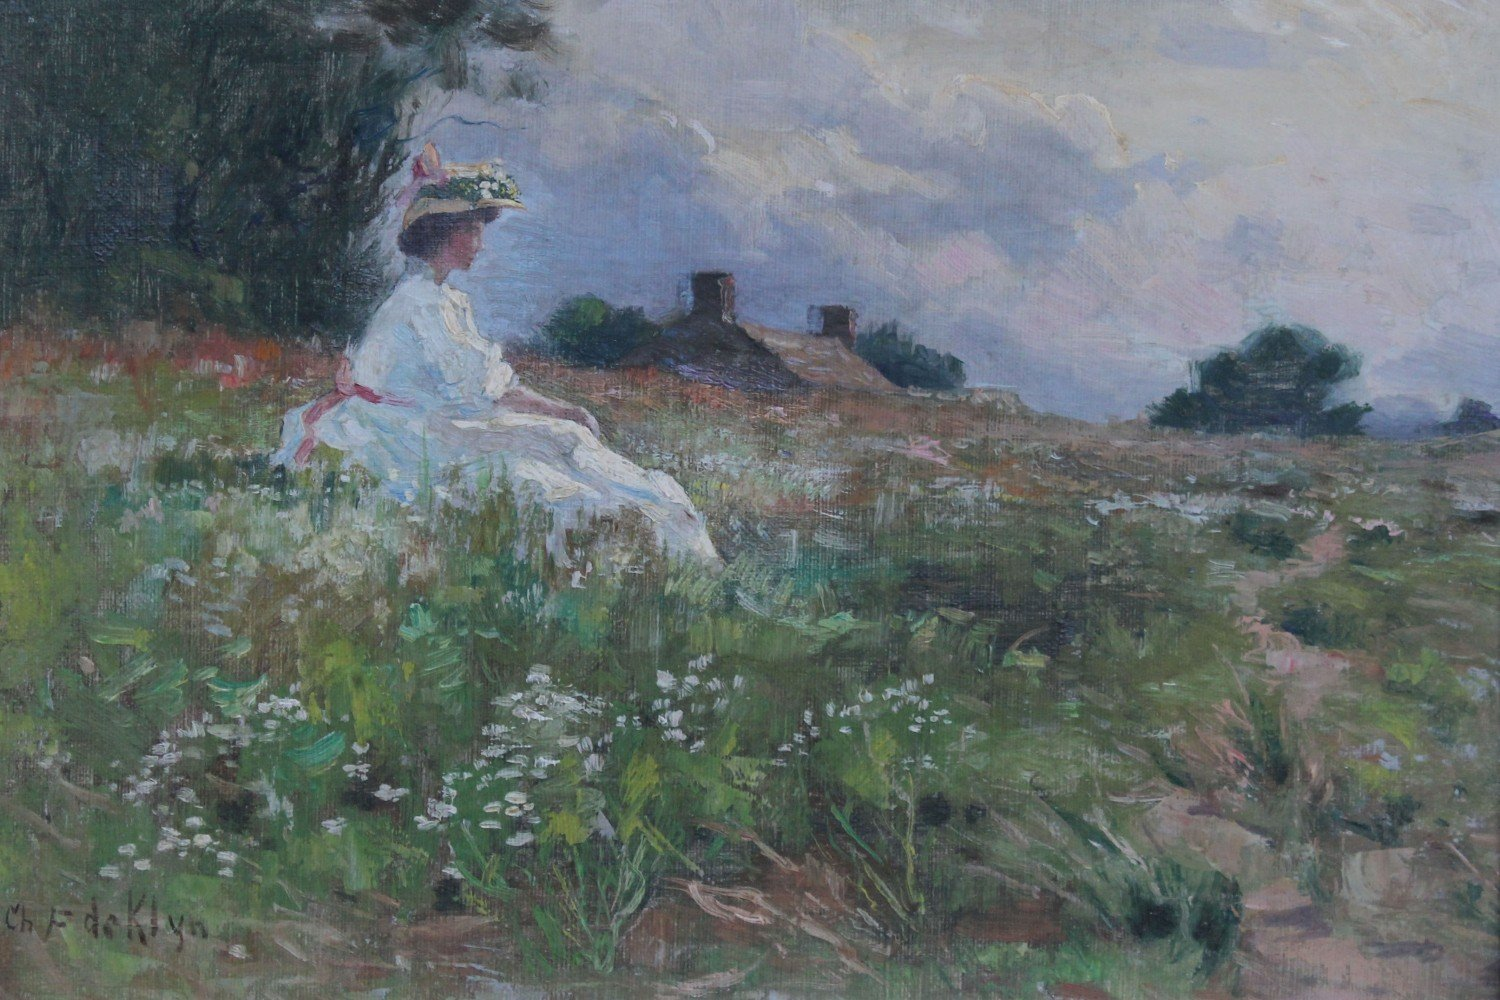 Woman in a Country Landscape by Charles Francis DeKlyn